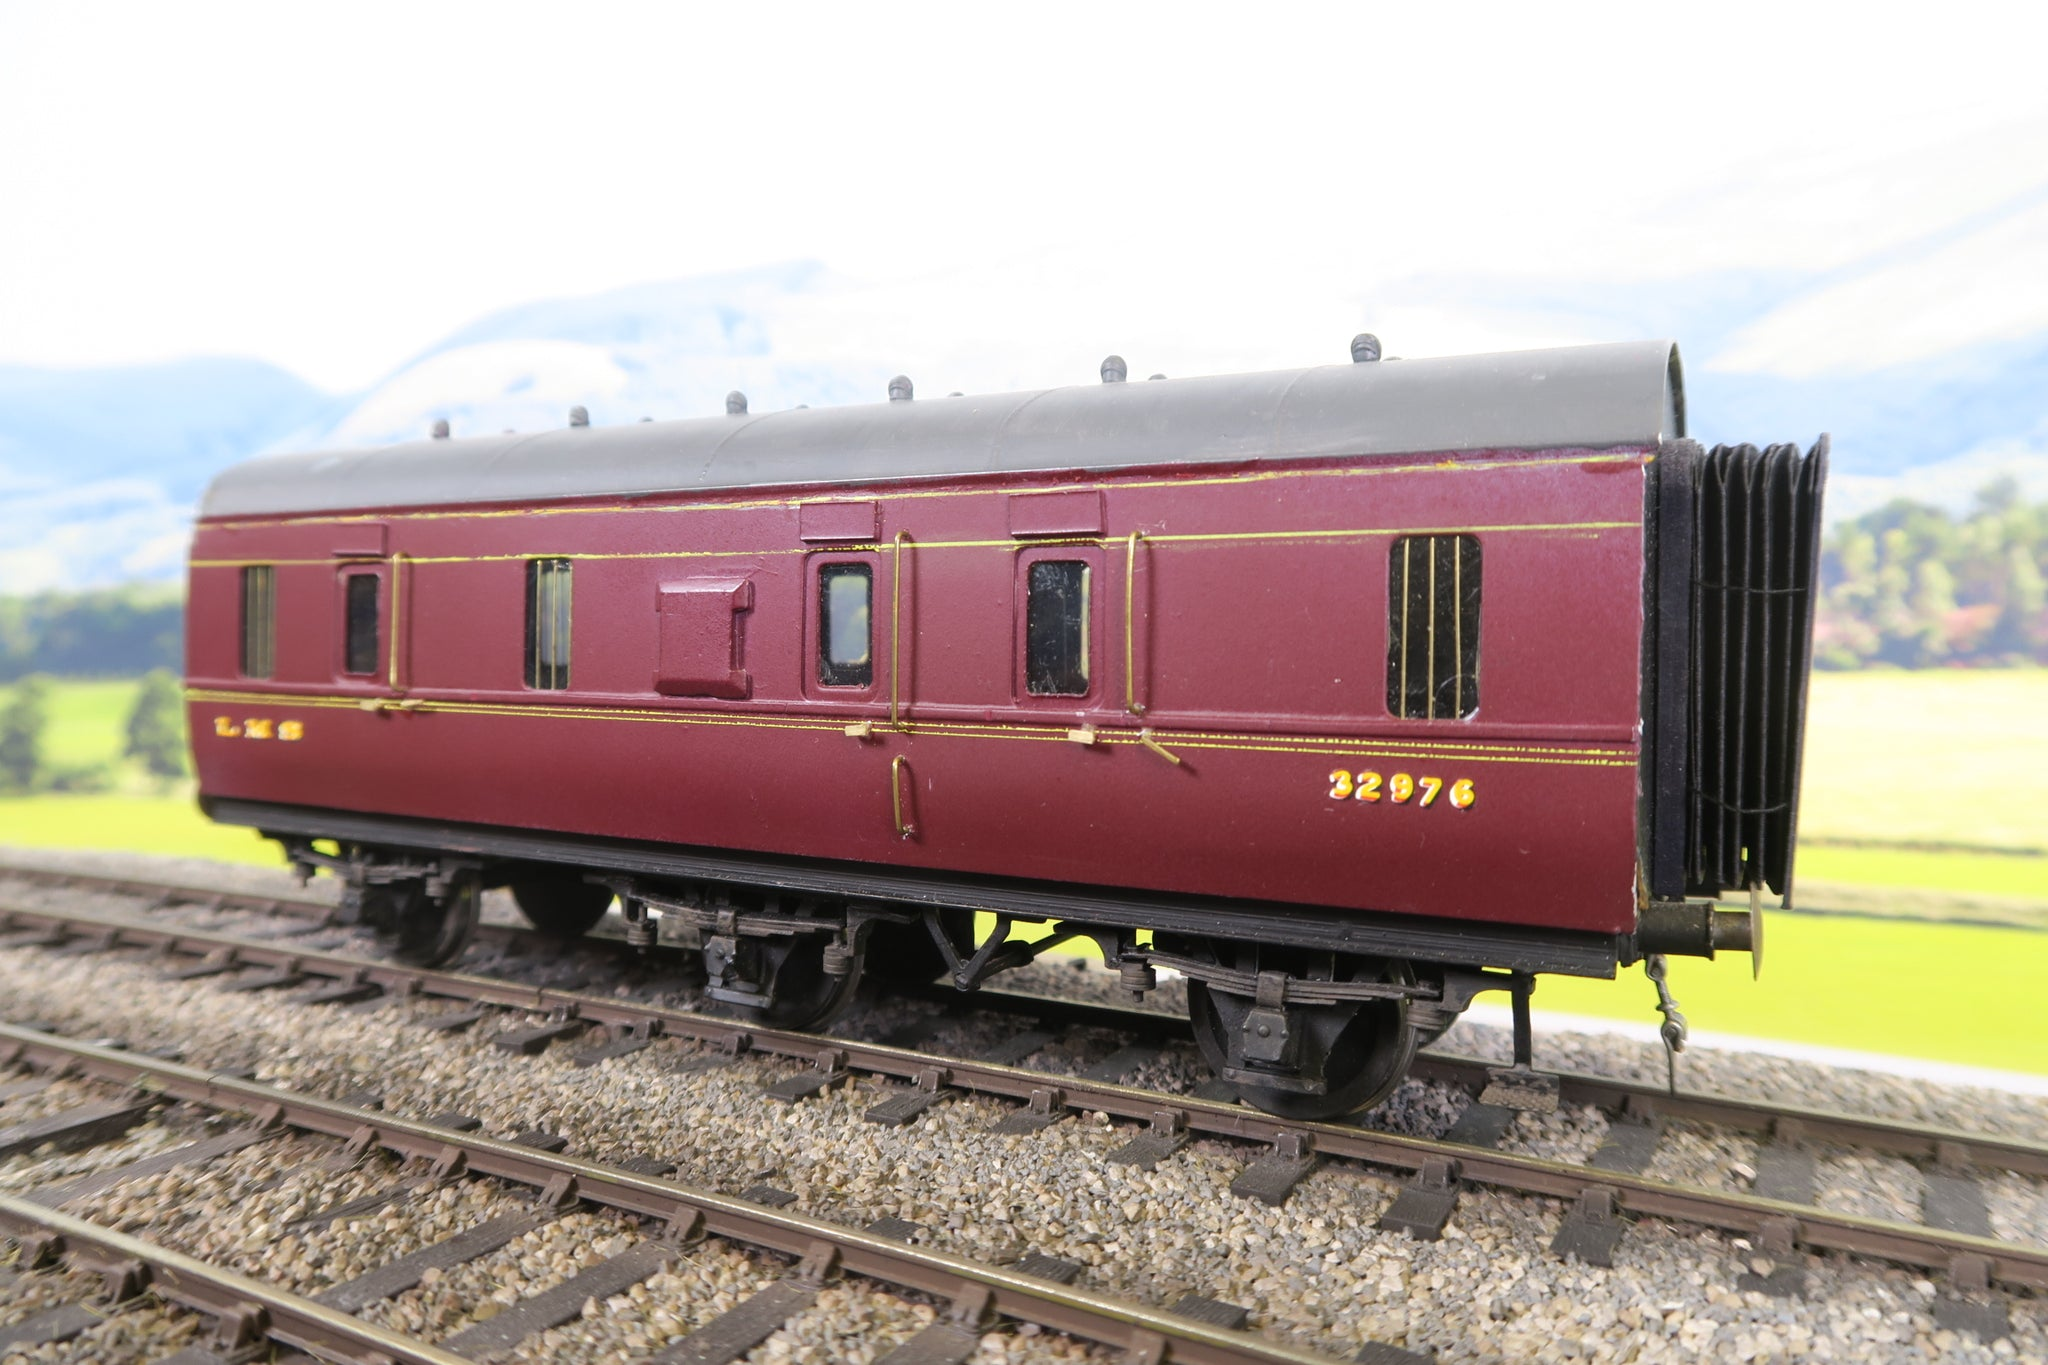 7mm Finescale O Gauge Kit Built LMS Lined Maroon Six Wheel Brake Van '32976'